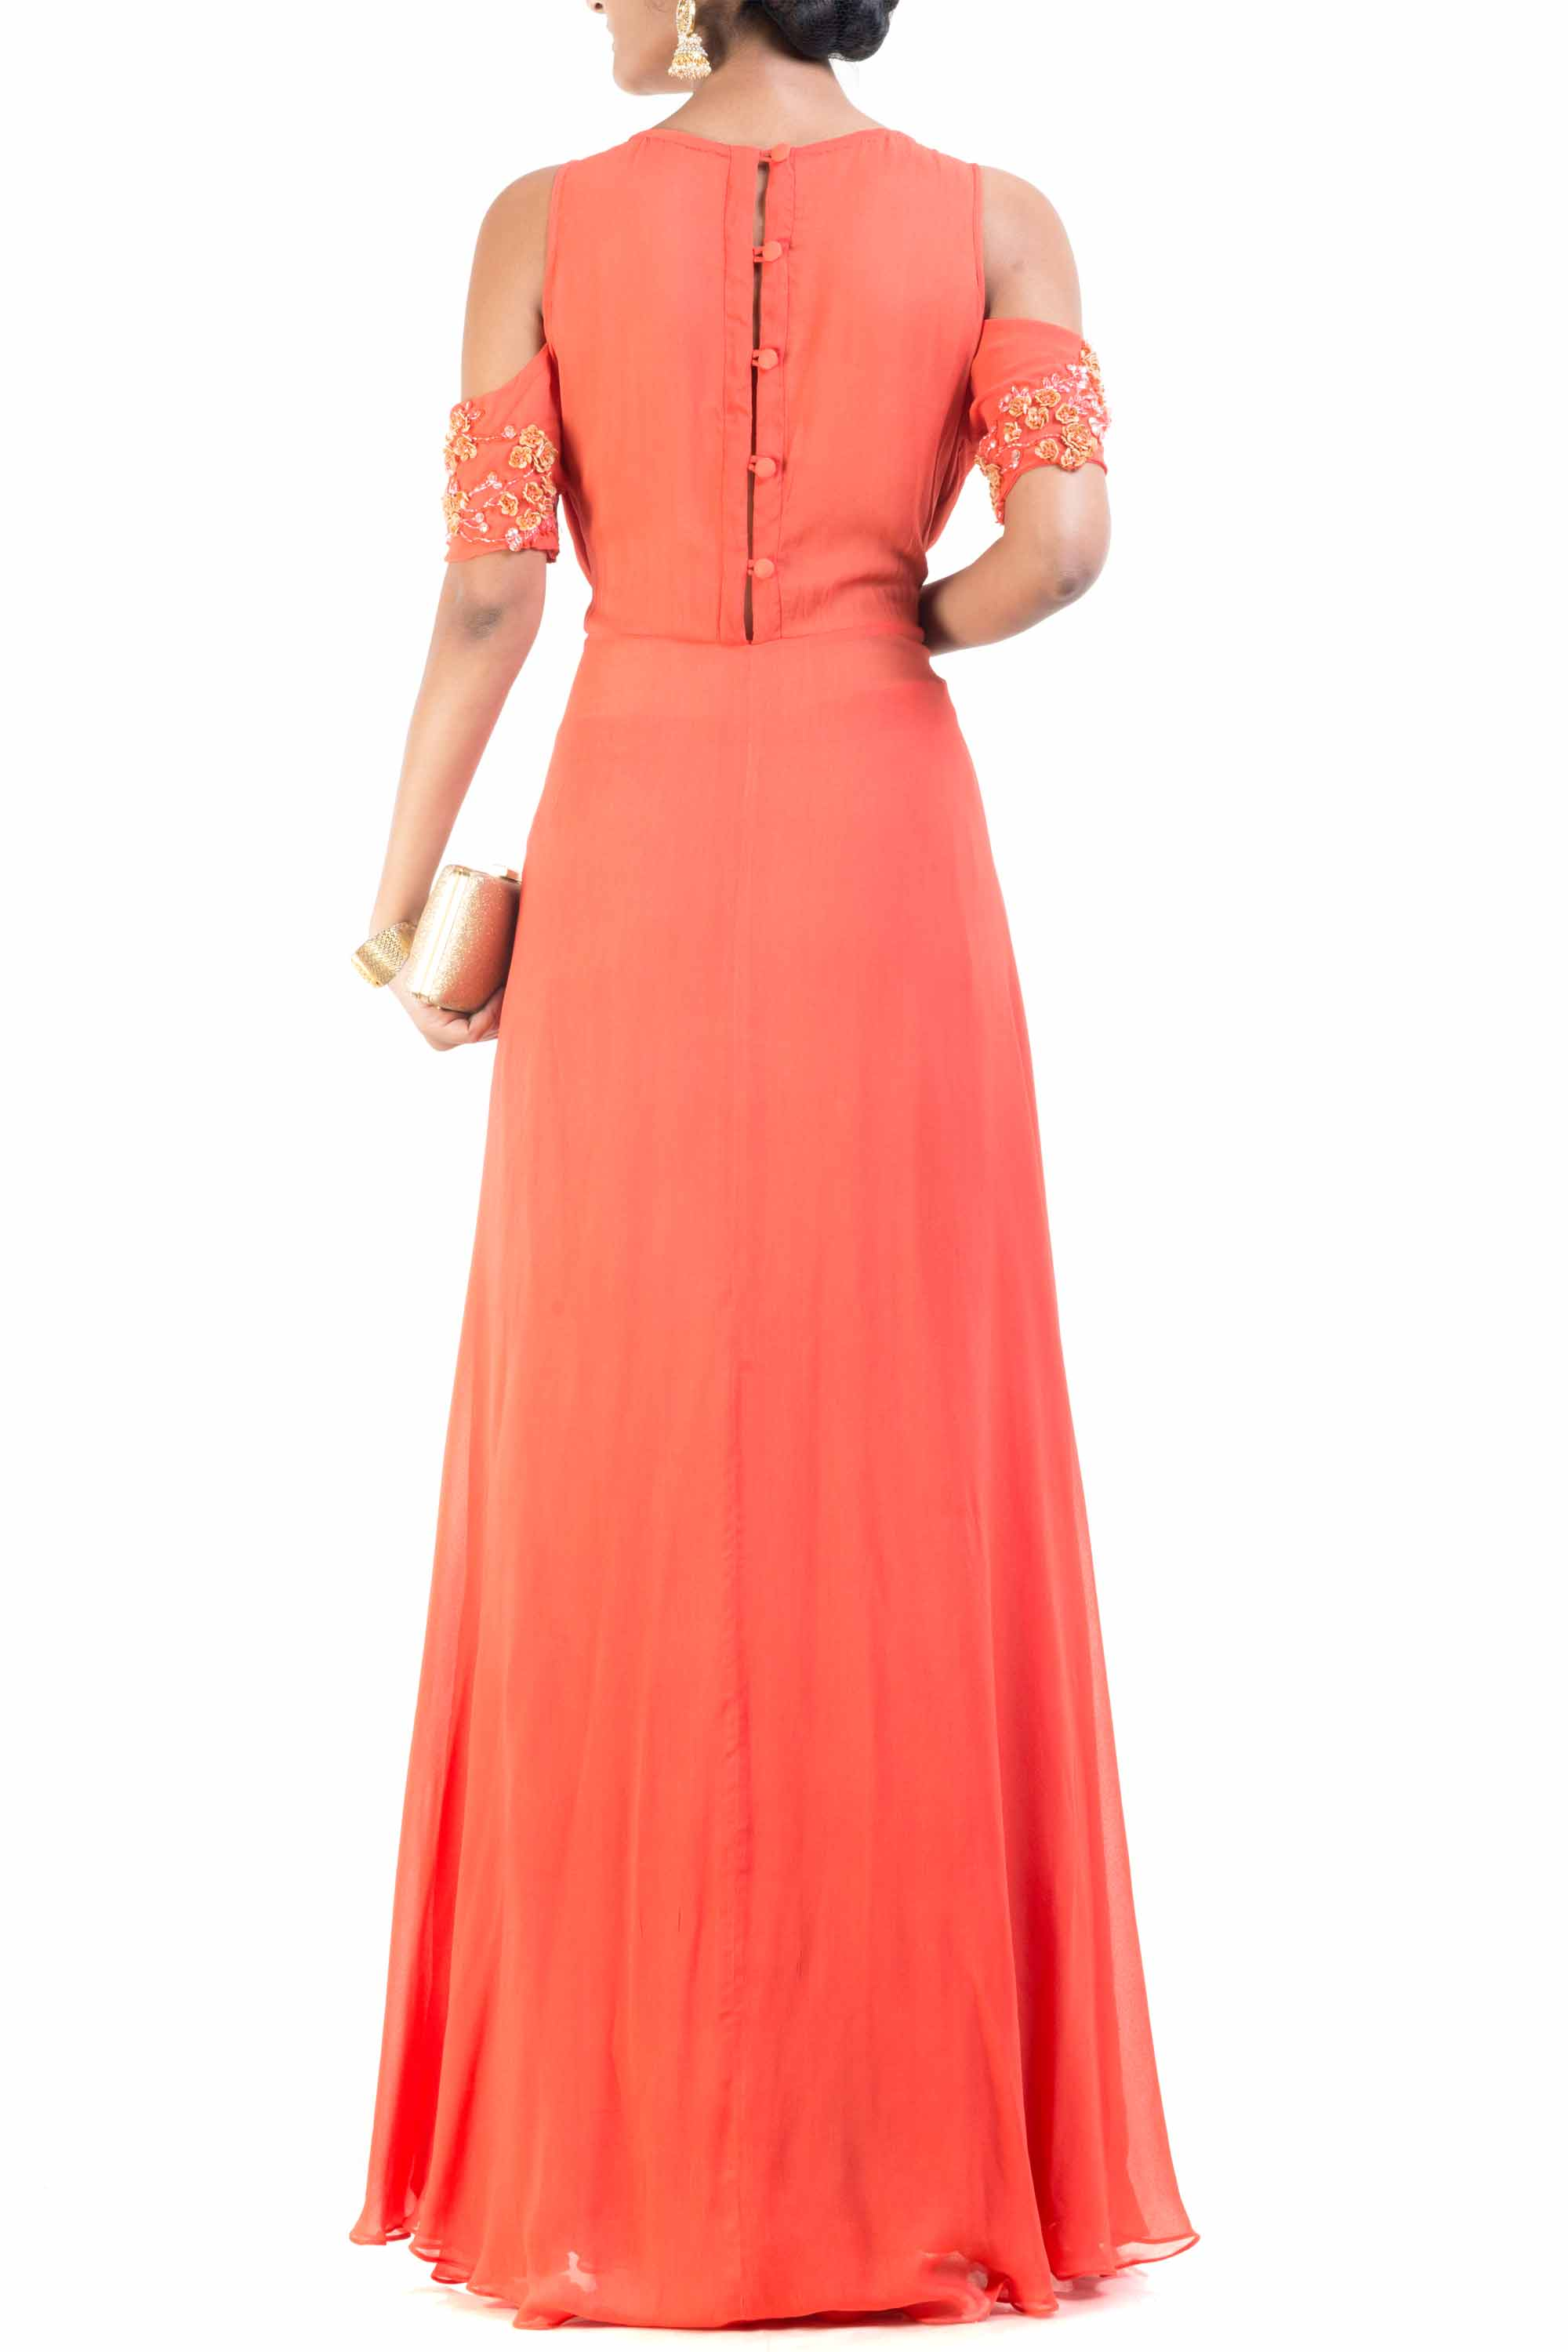 Cold Shoulder Bright Orange Palazzo Sahara Set Back